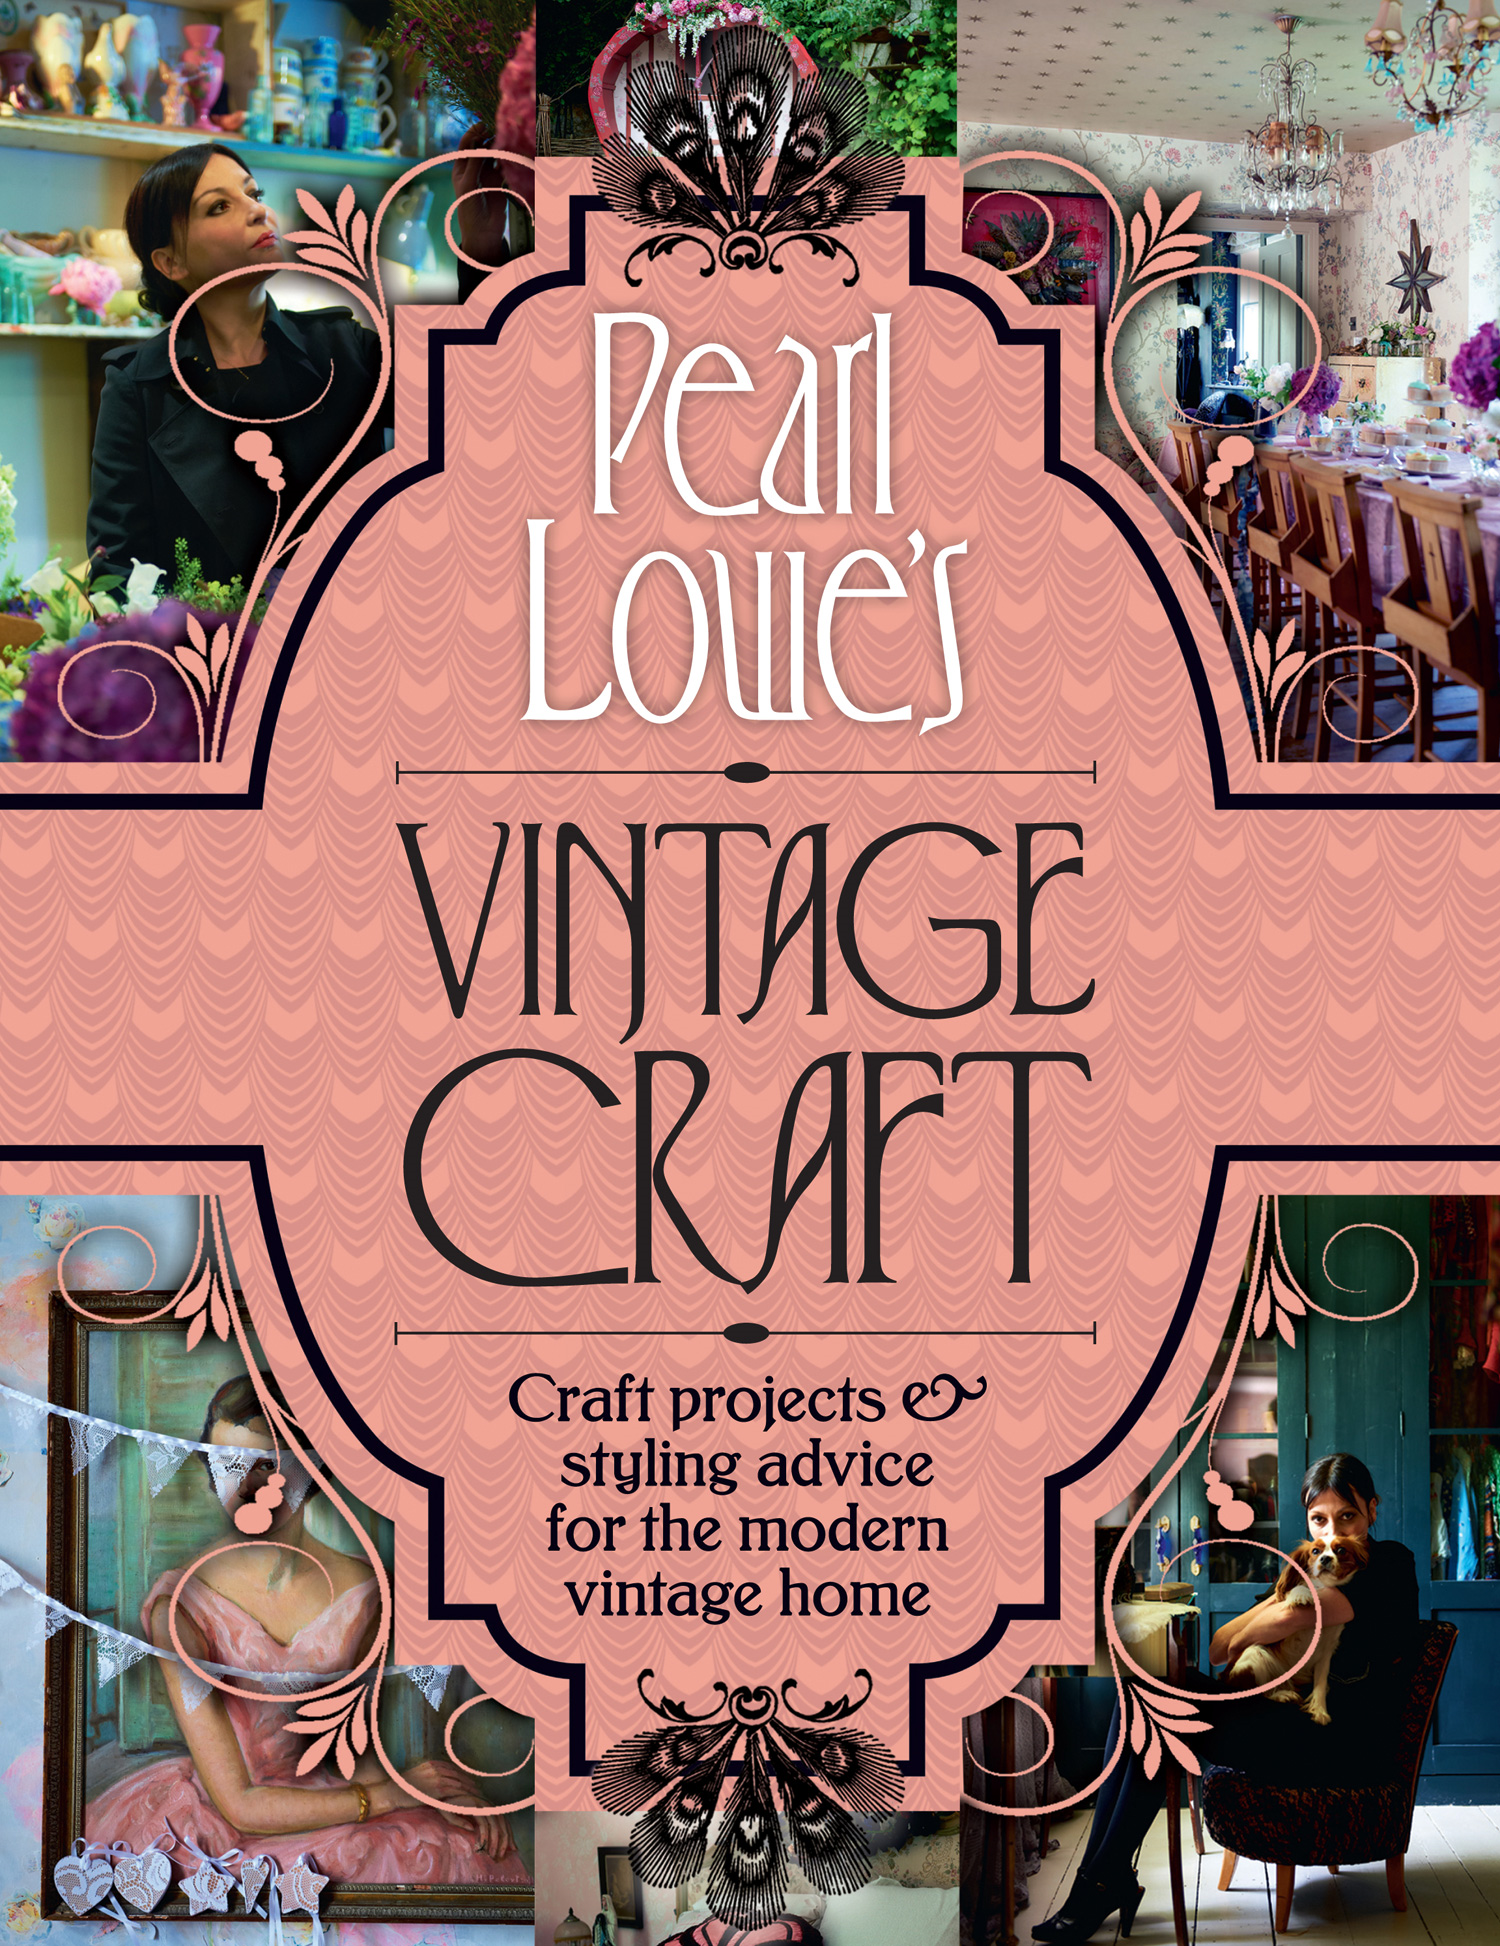 Pearl Lowe?s Vintage Craft: 50 Craft Projects and Home Styling Advice